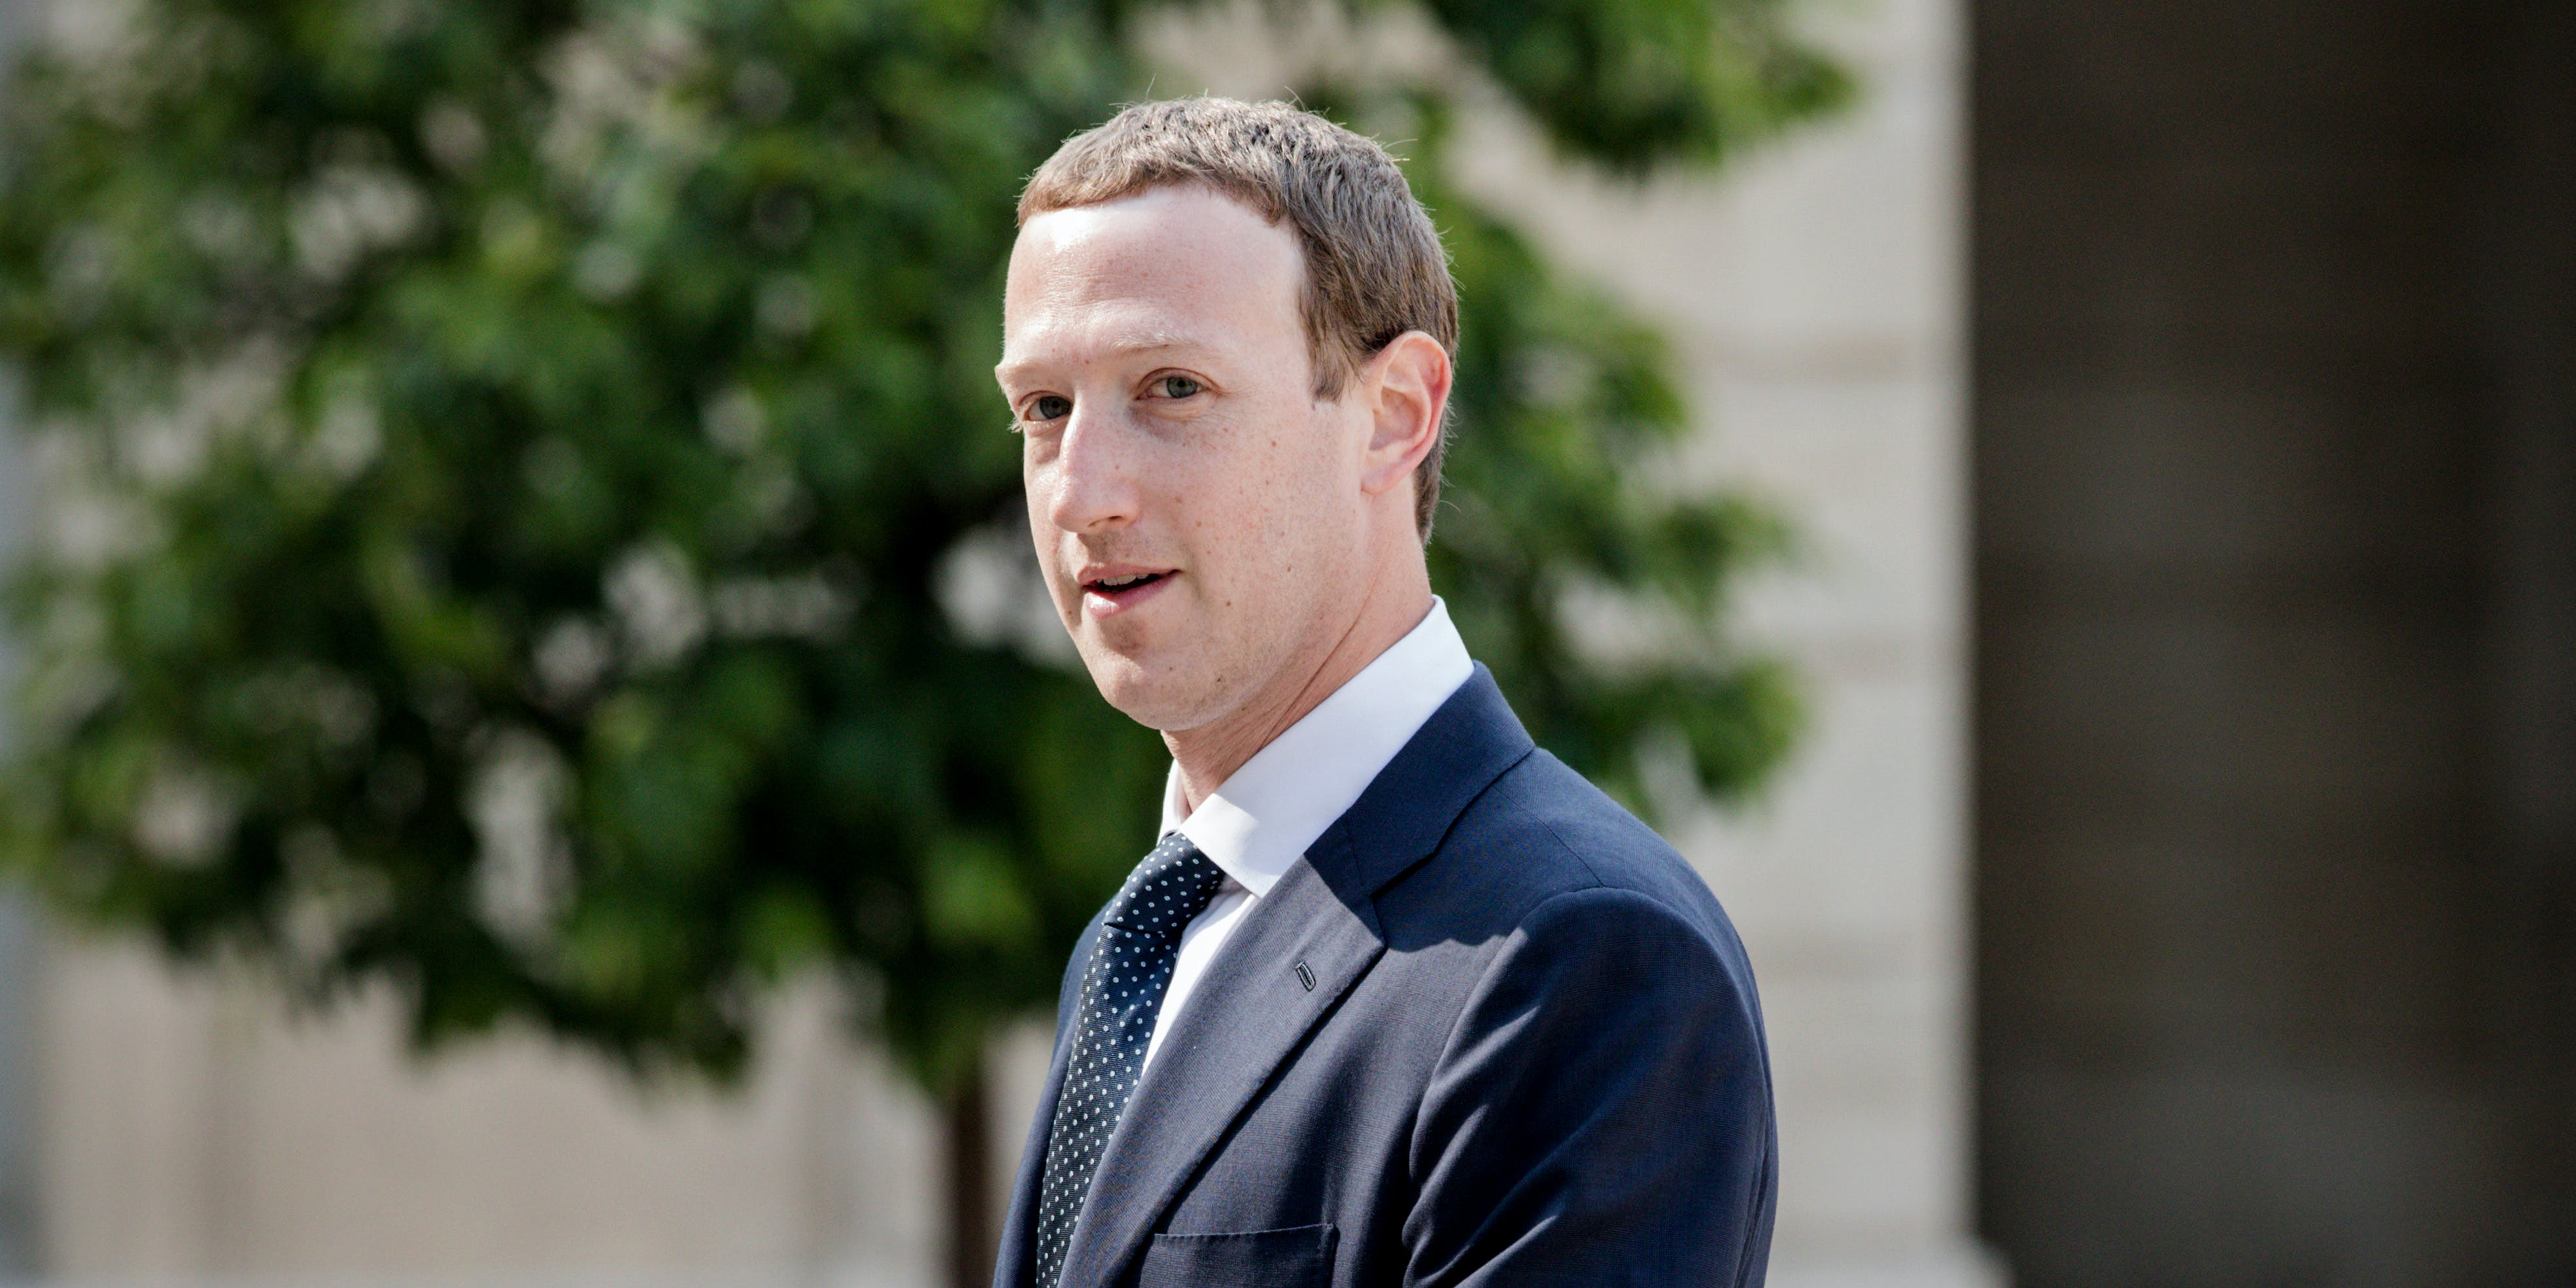 Facebook CEO Mark Zuckerberg heads for a meeting with the French President. Facebook is accused of shadow banning cannabis companies, essentially impacting their business by making them impossible to find on the social media site.